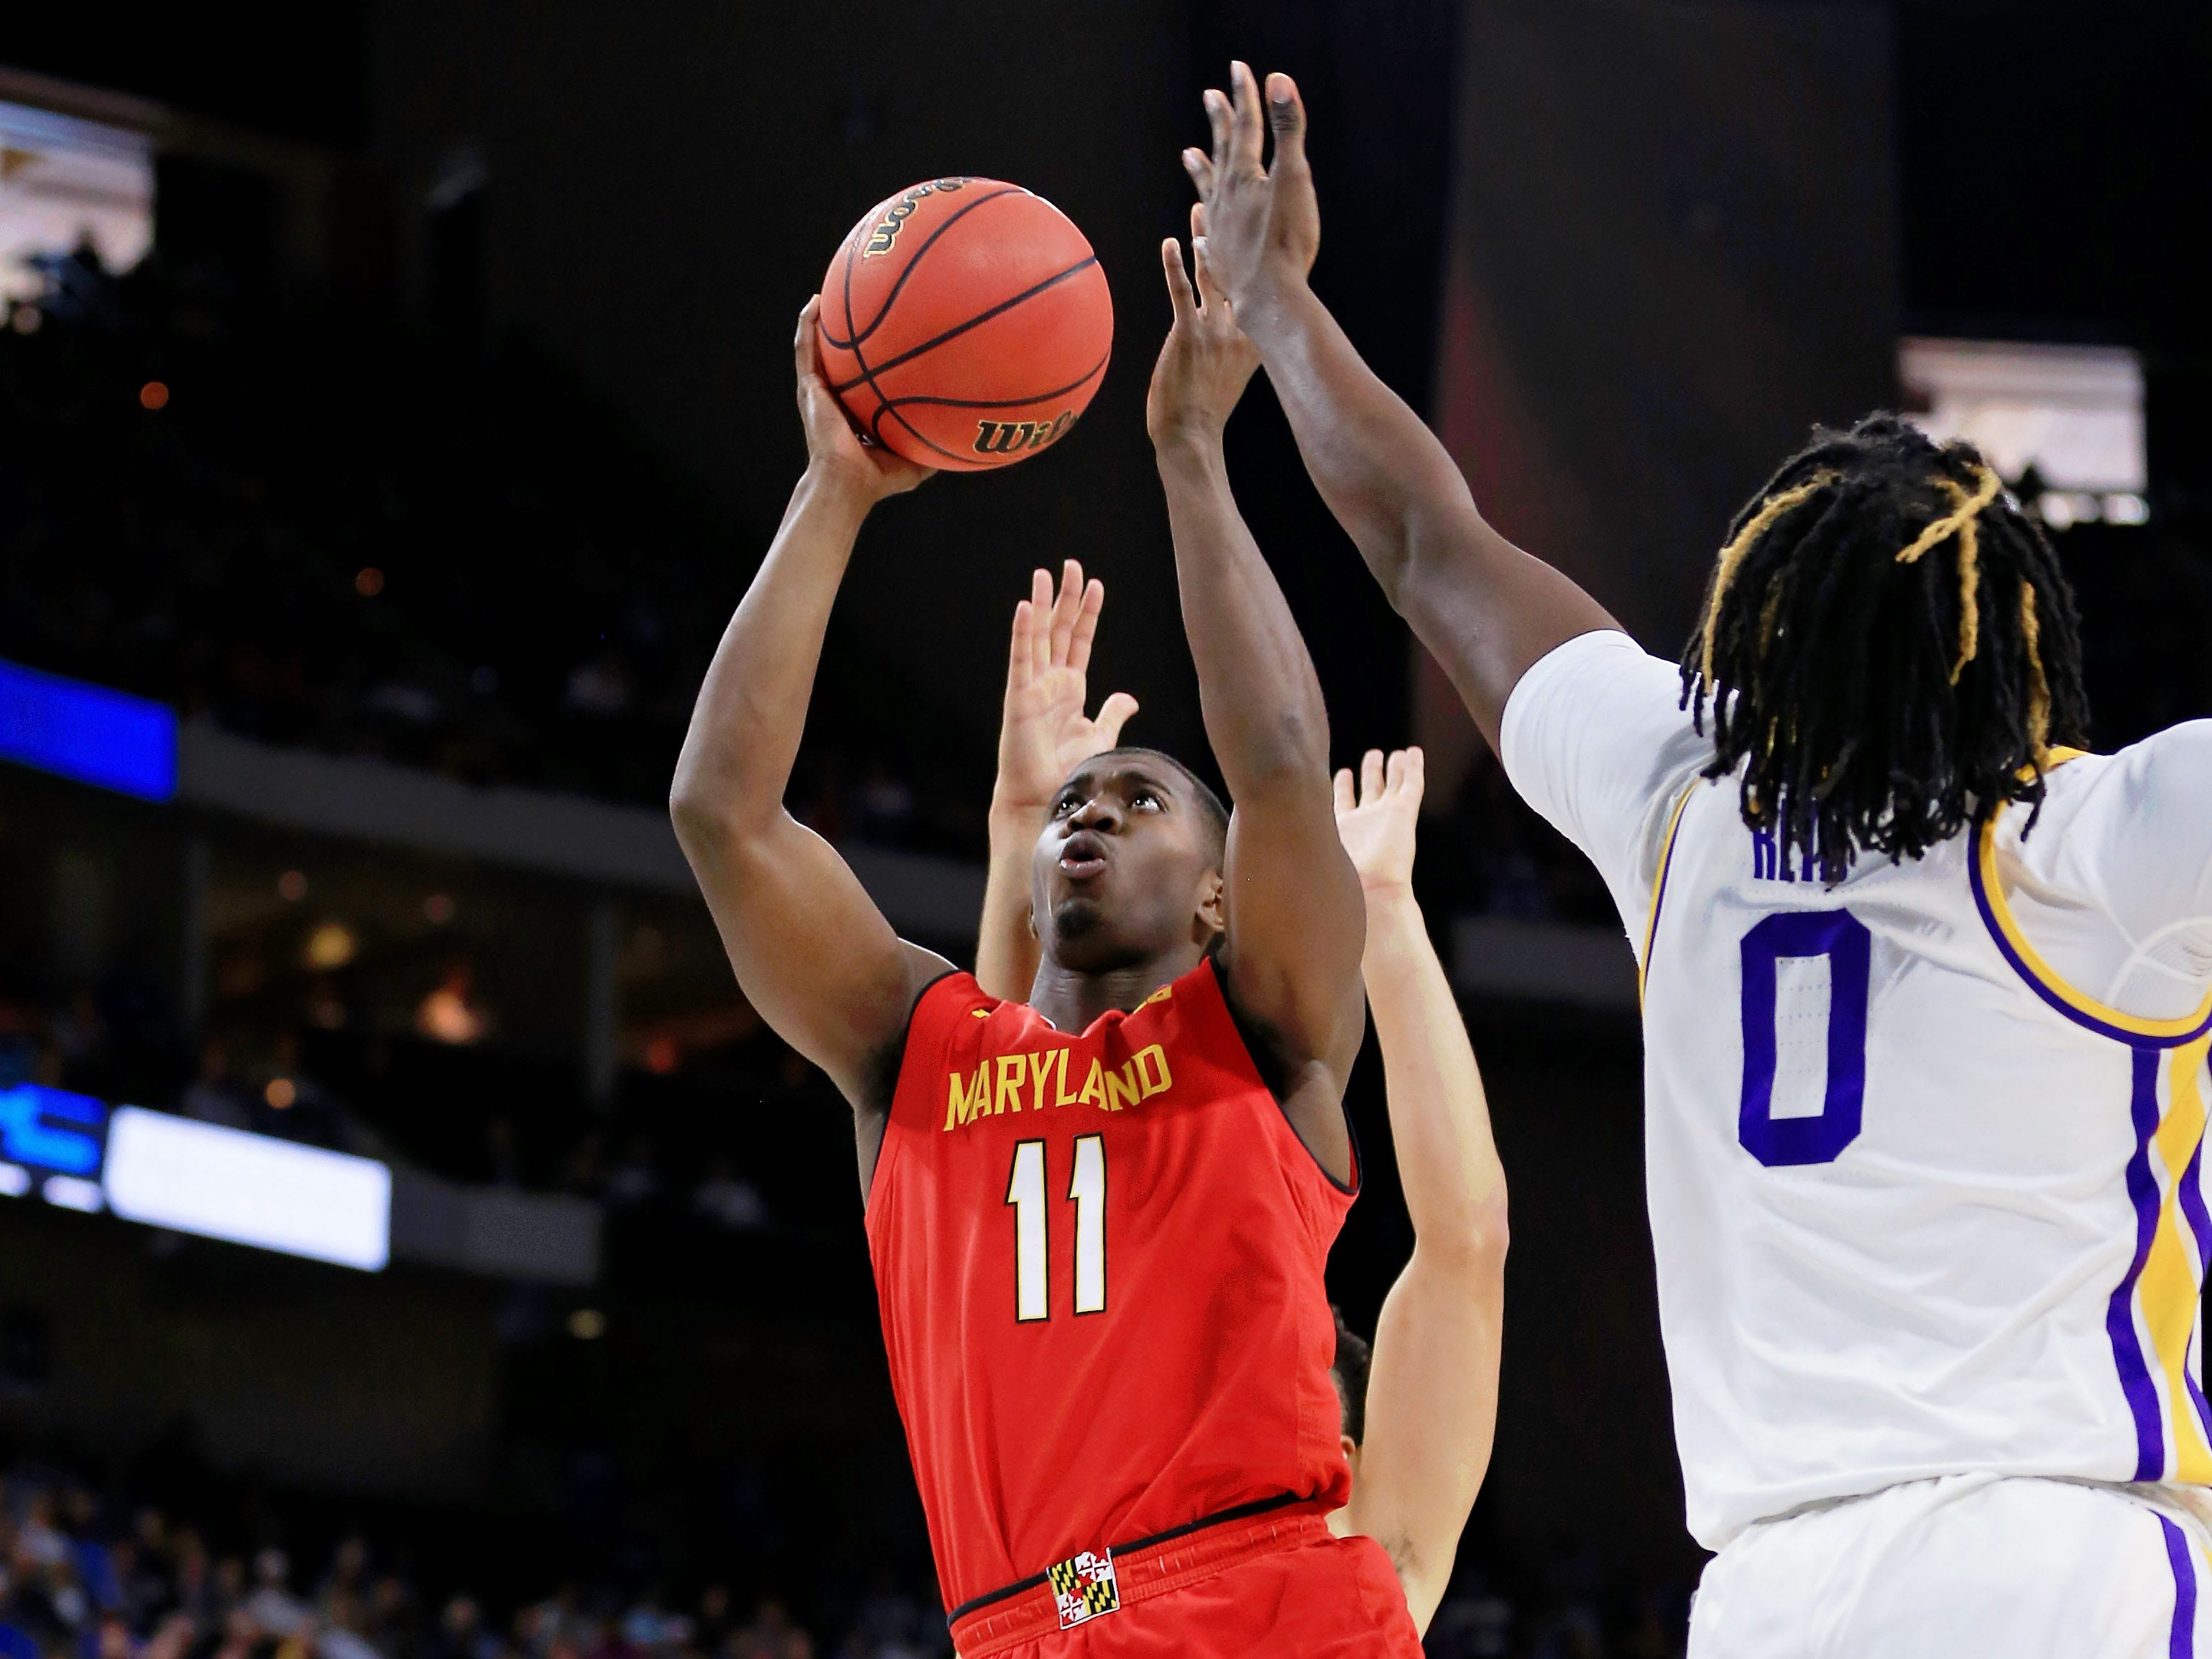 Mar 23, 2019; Jacksonville, FL, USA; Maryland Terrapins guard Darryl Morsell (11) shoots while LSU Tigers forward Naz Reid (0) attempts to block during the first half in the second round of the 2019 NCAA Tournament at Jacksonville Veterans Memorial Arena. Mandatory Credit: Matt Stamey-USA TODAY Sports